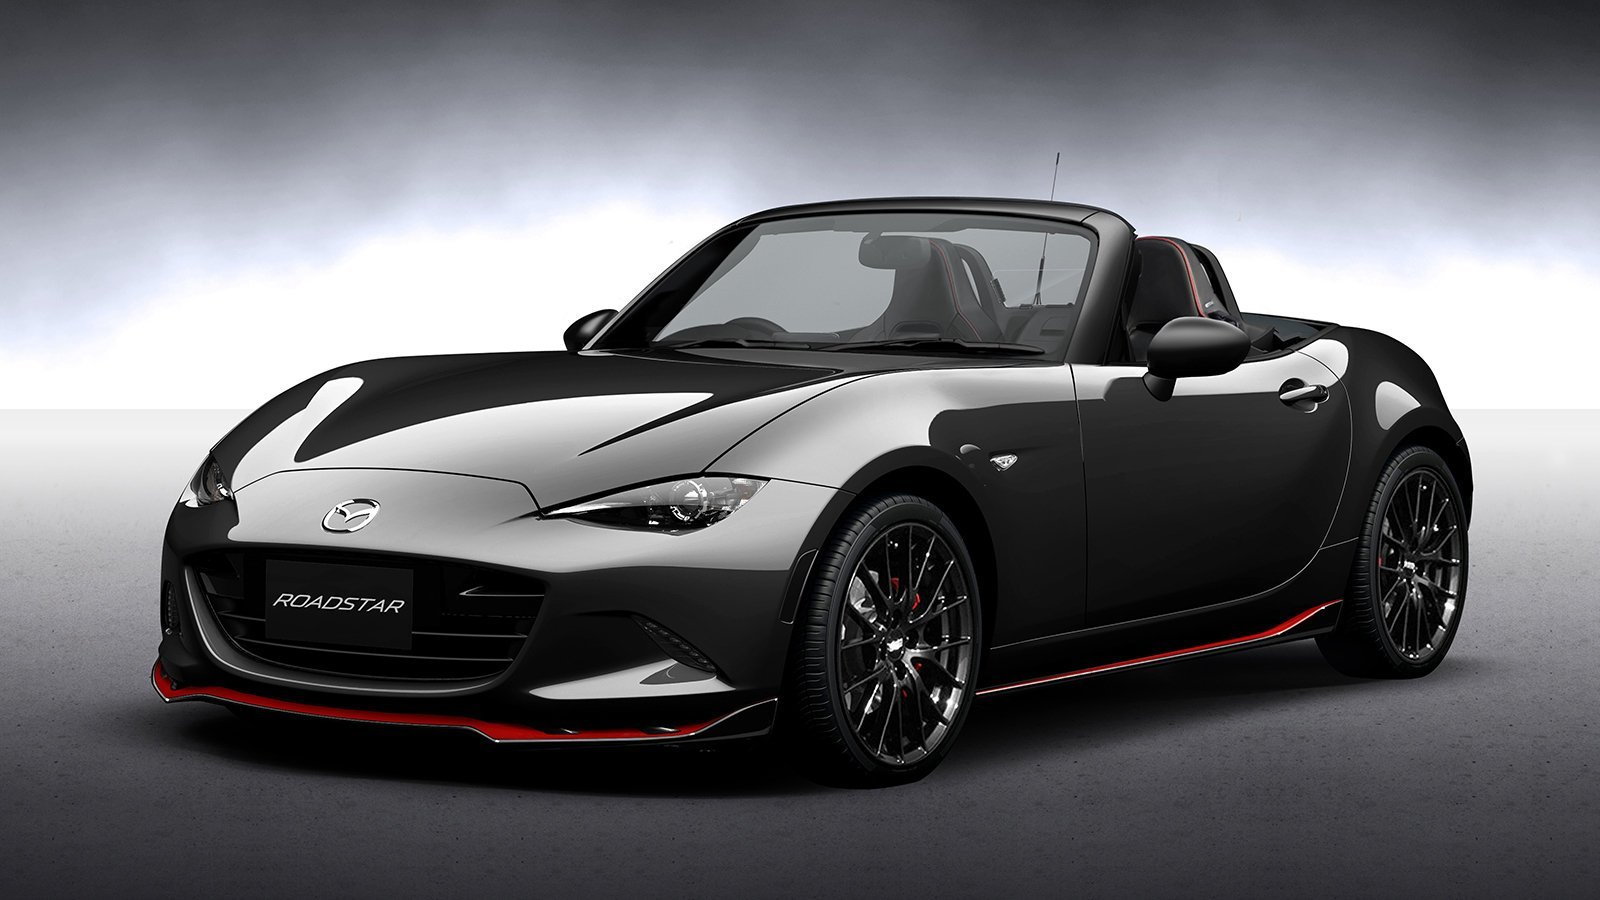 Latest 2016 Mazda Roadster Rs Racing Concept Picture 660458 Free Download